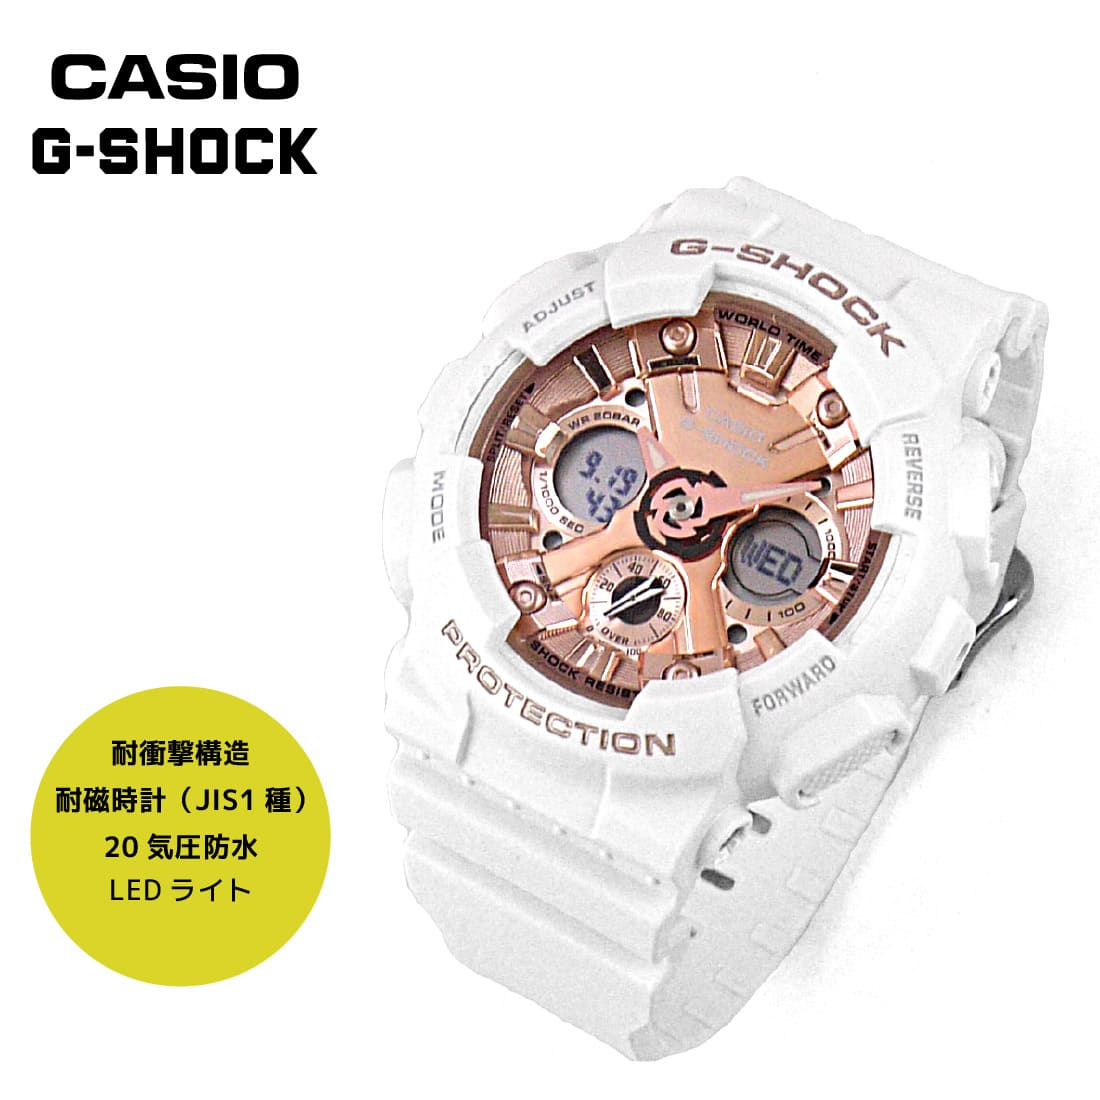 腕時計, 男女兼用腕時計 CASIO G-SHOCK G S series GMA-S120MF-7A2